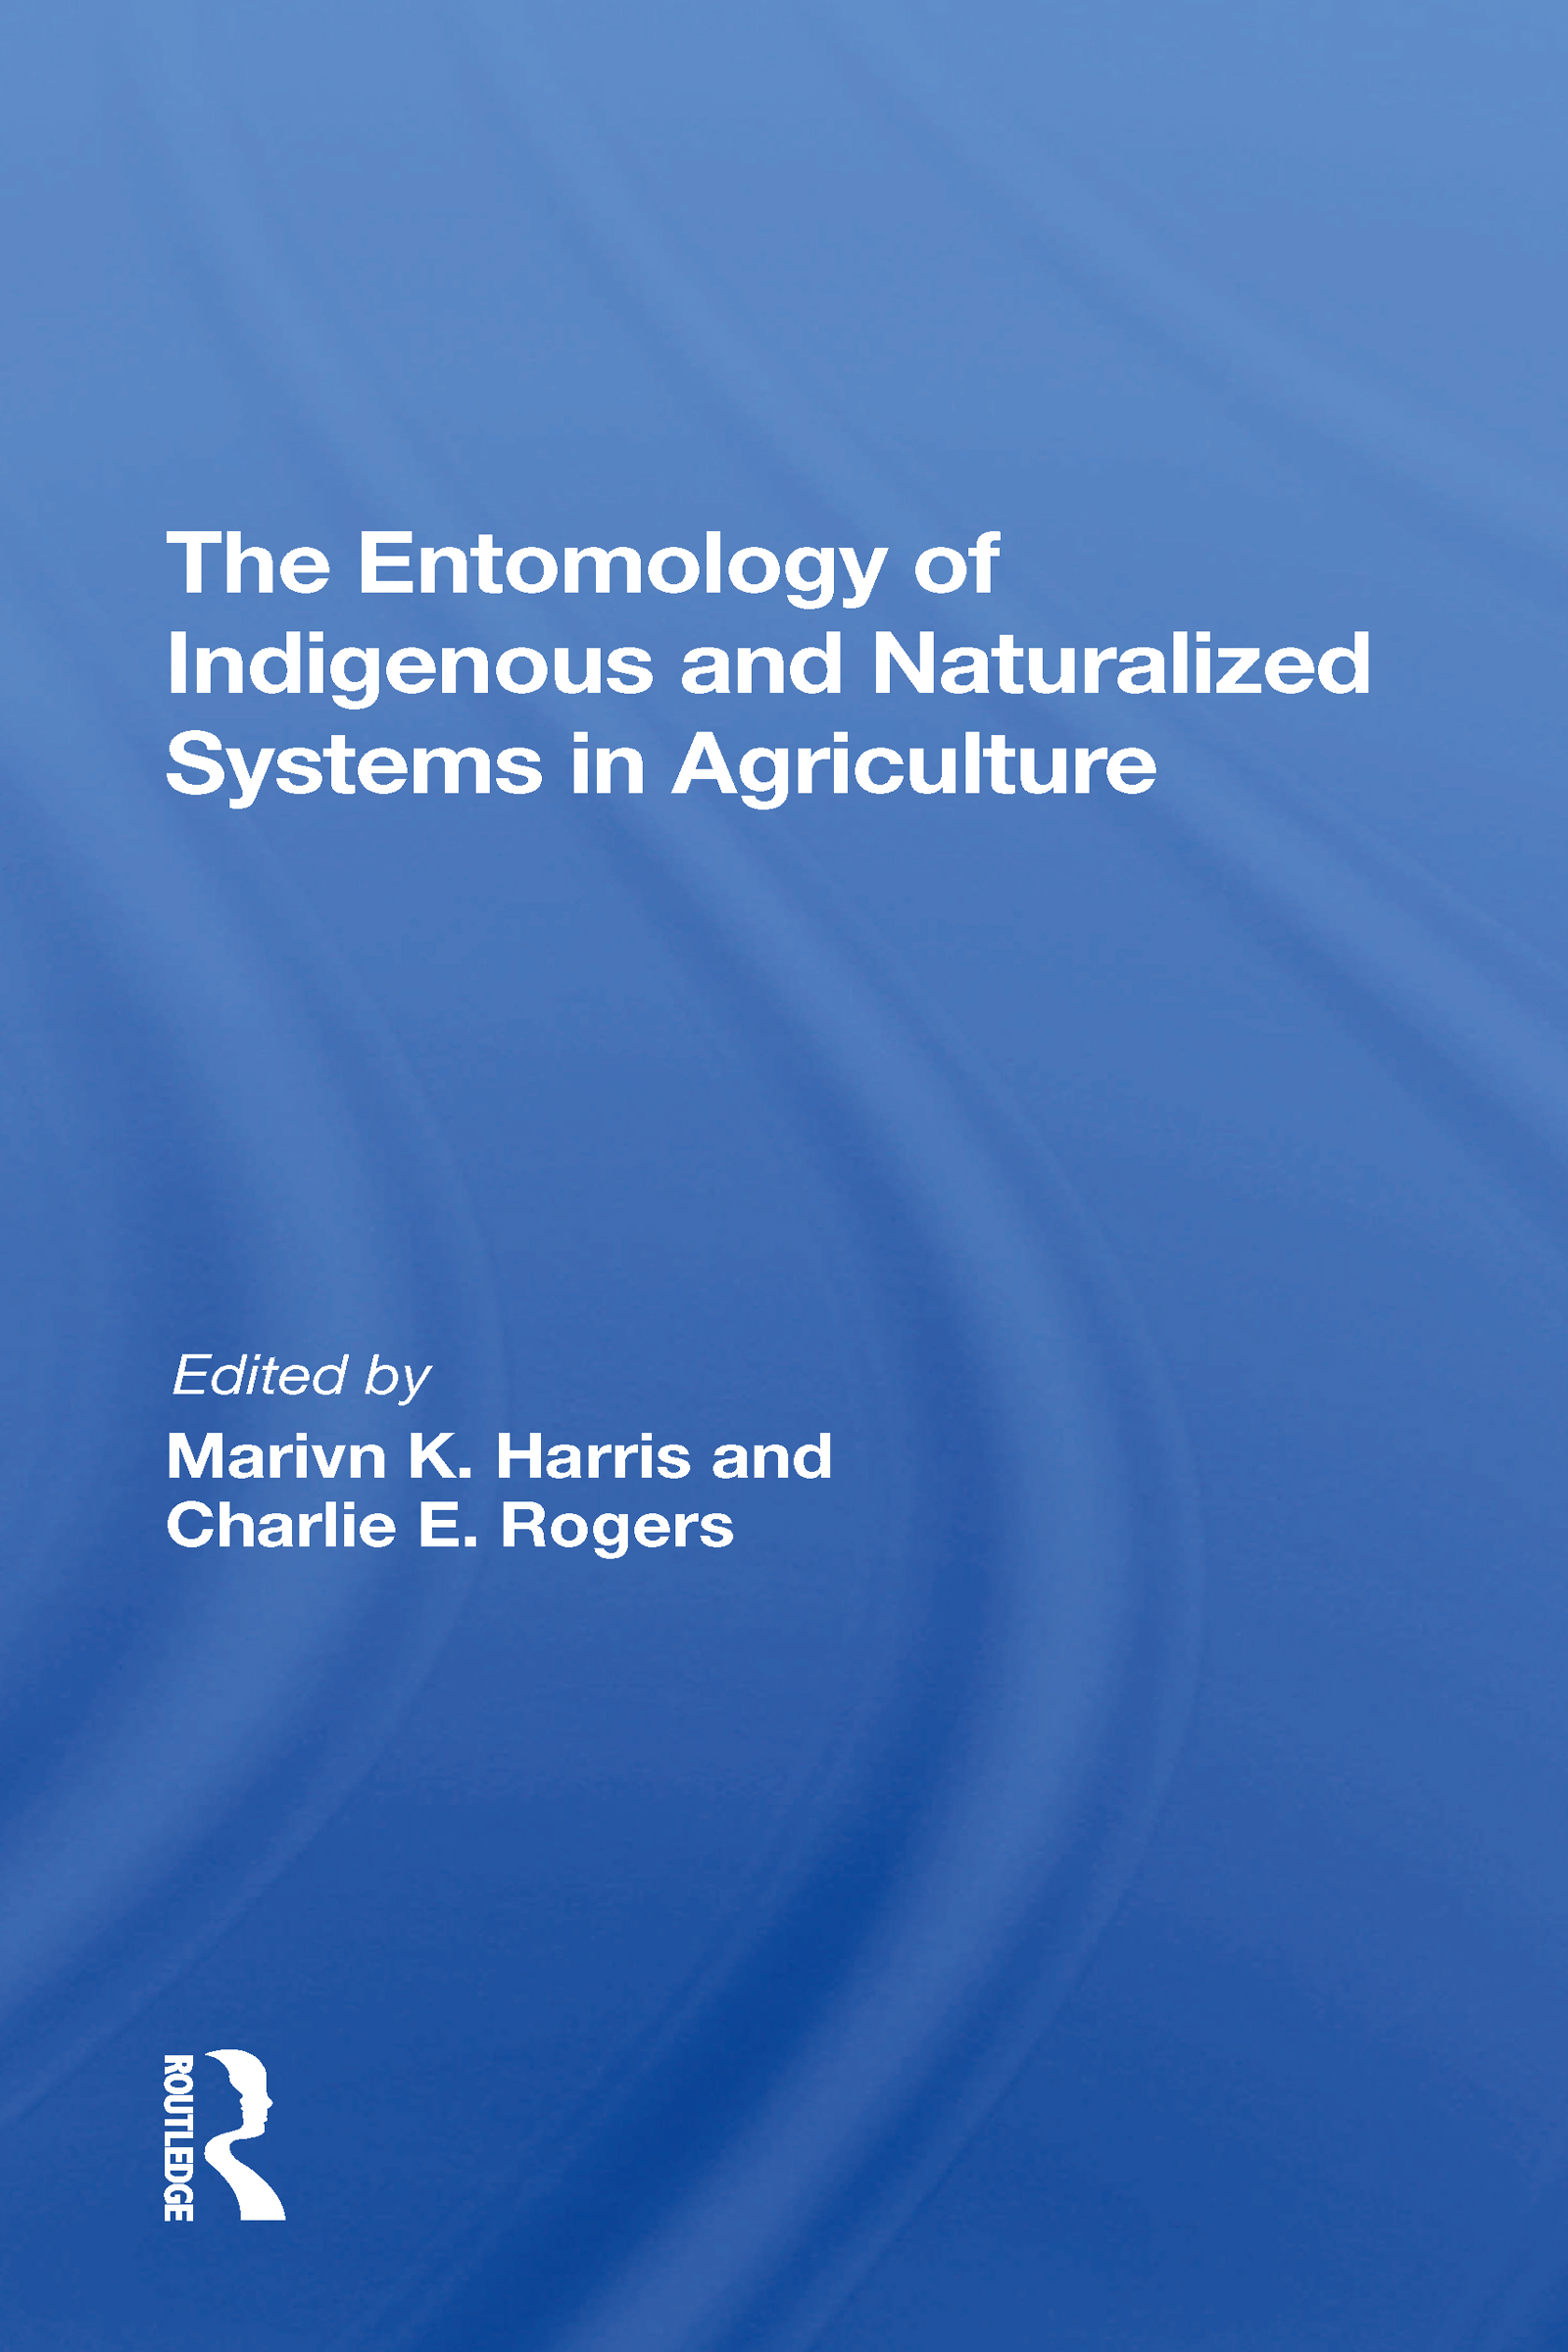 The Entomology Of Indigenous And Naturalized Systems In Agriculture